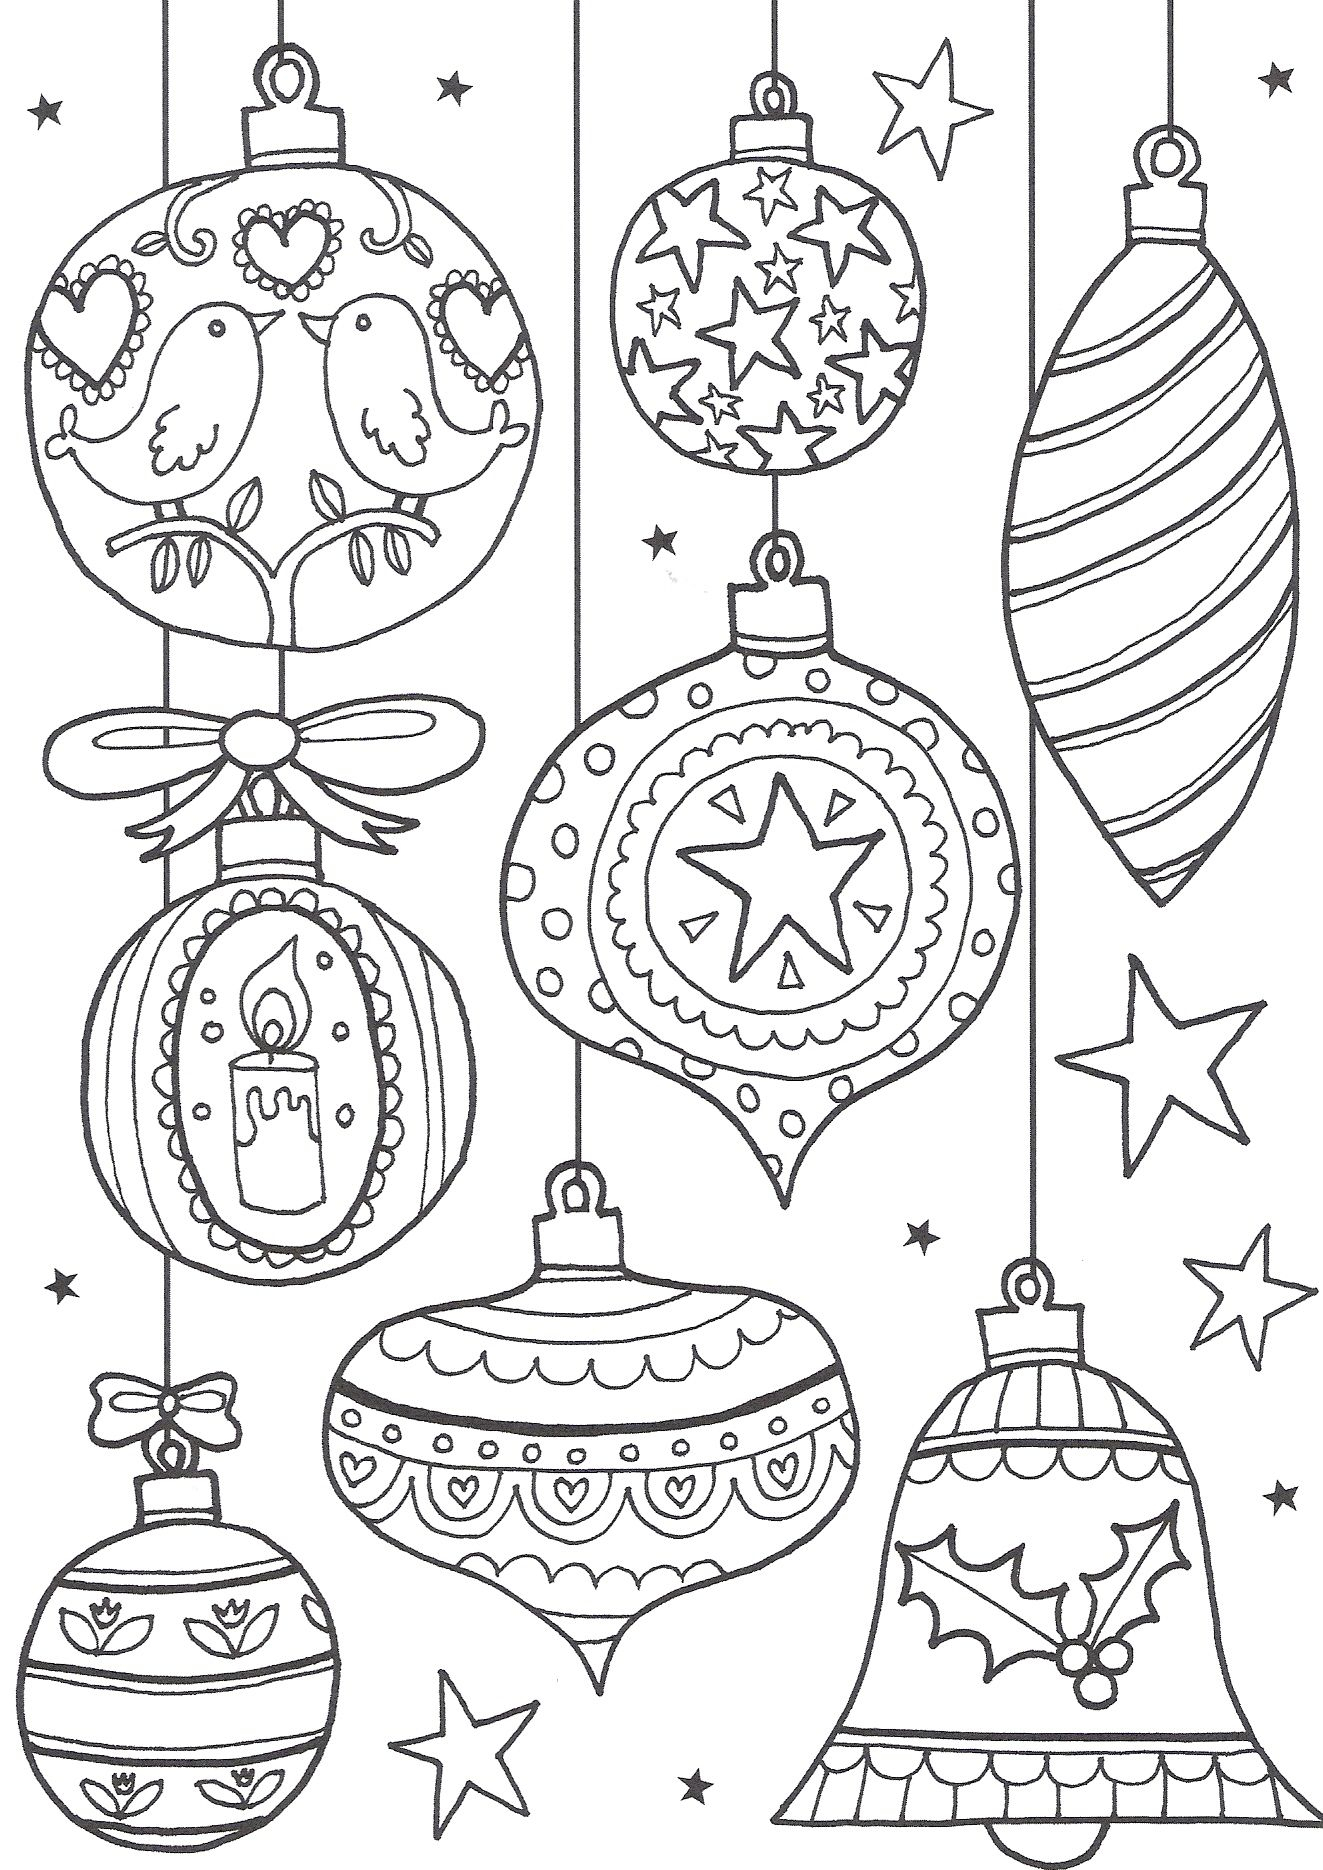 Free Christmas Colouring Pages For Adults – The Ultimate